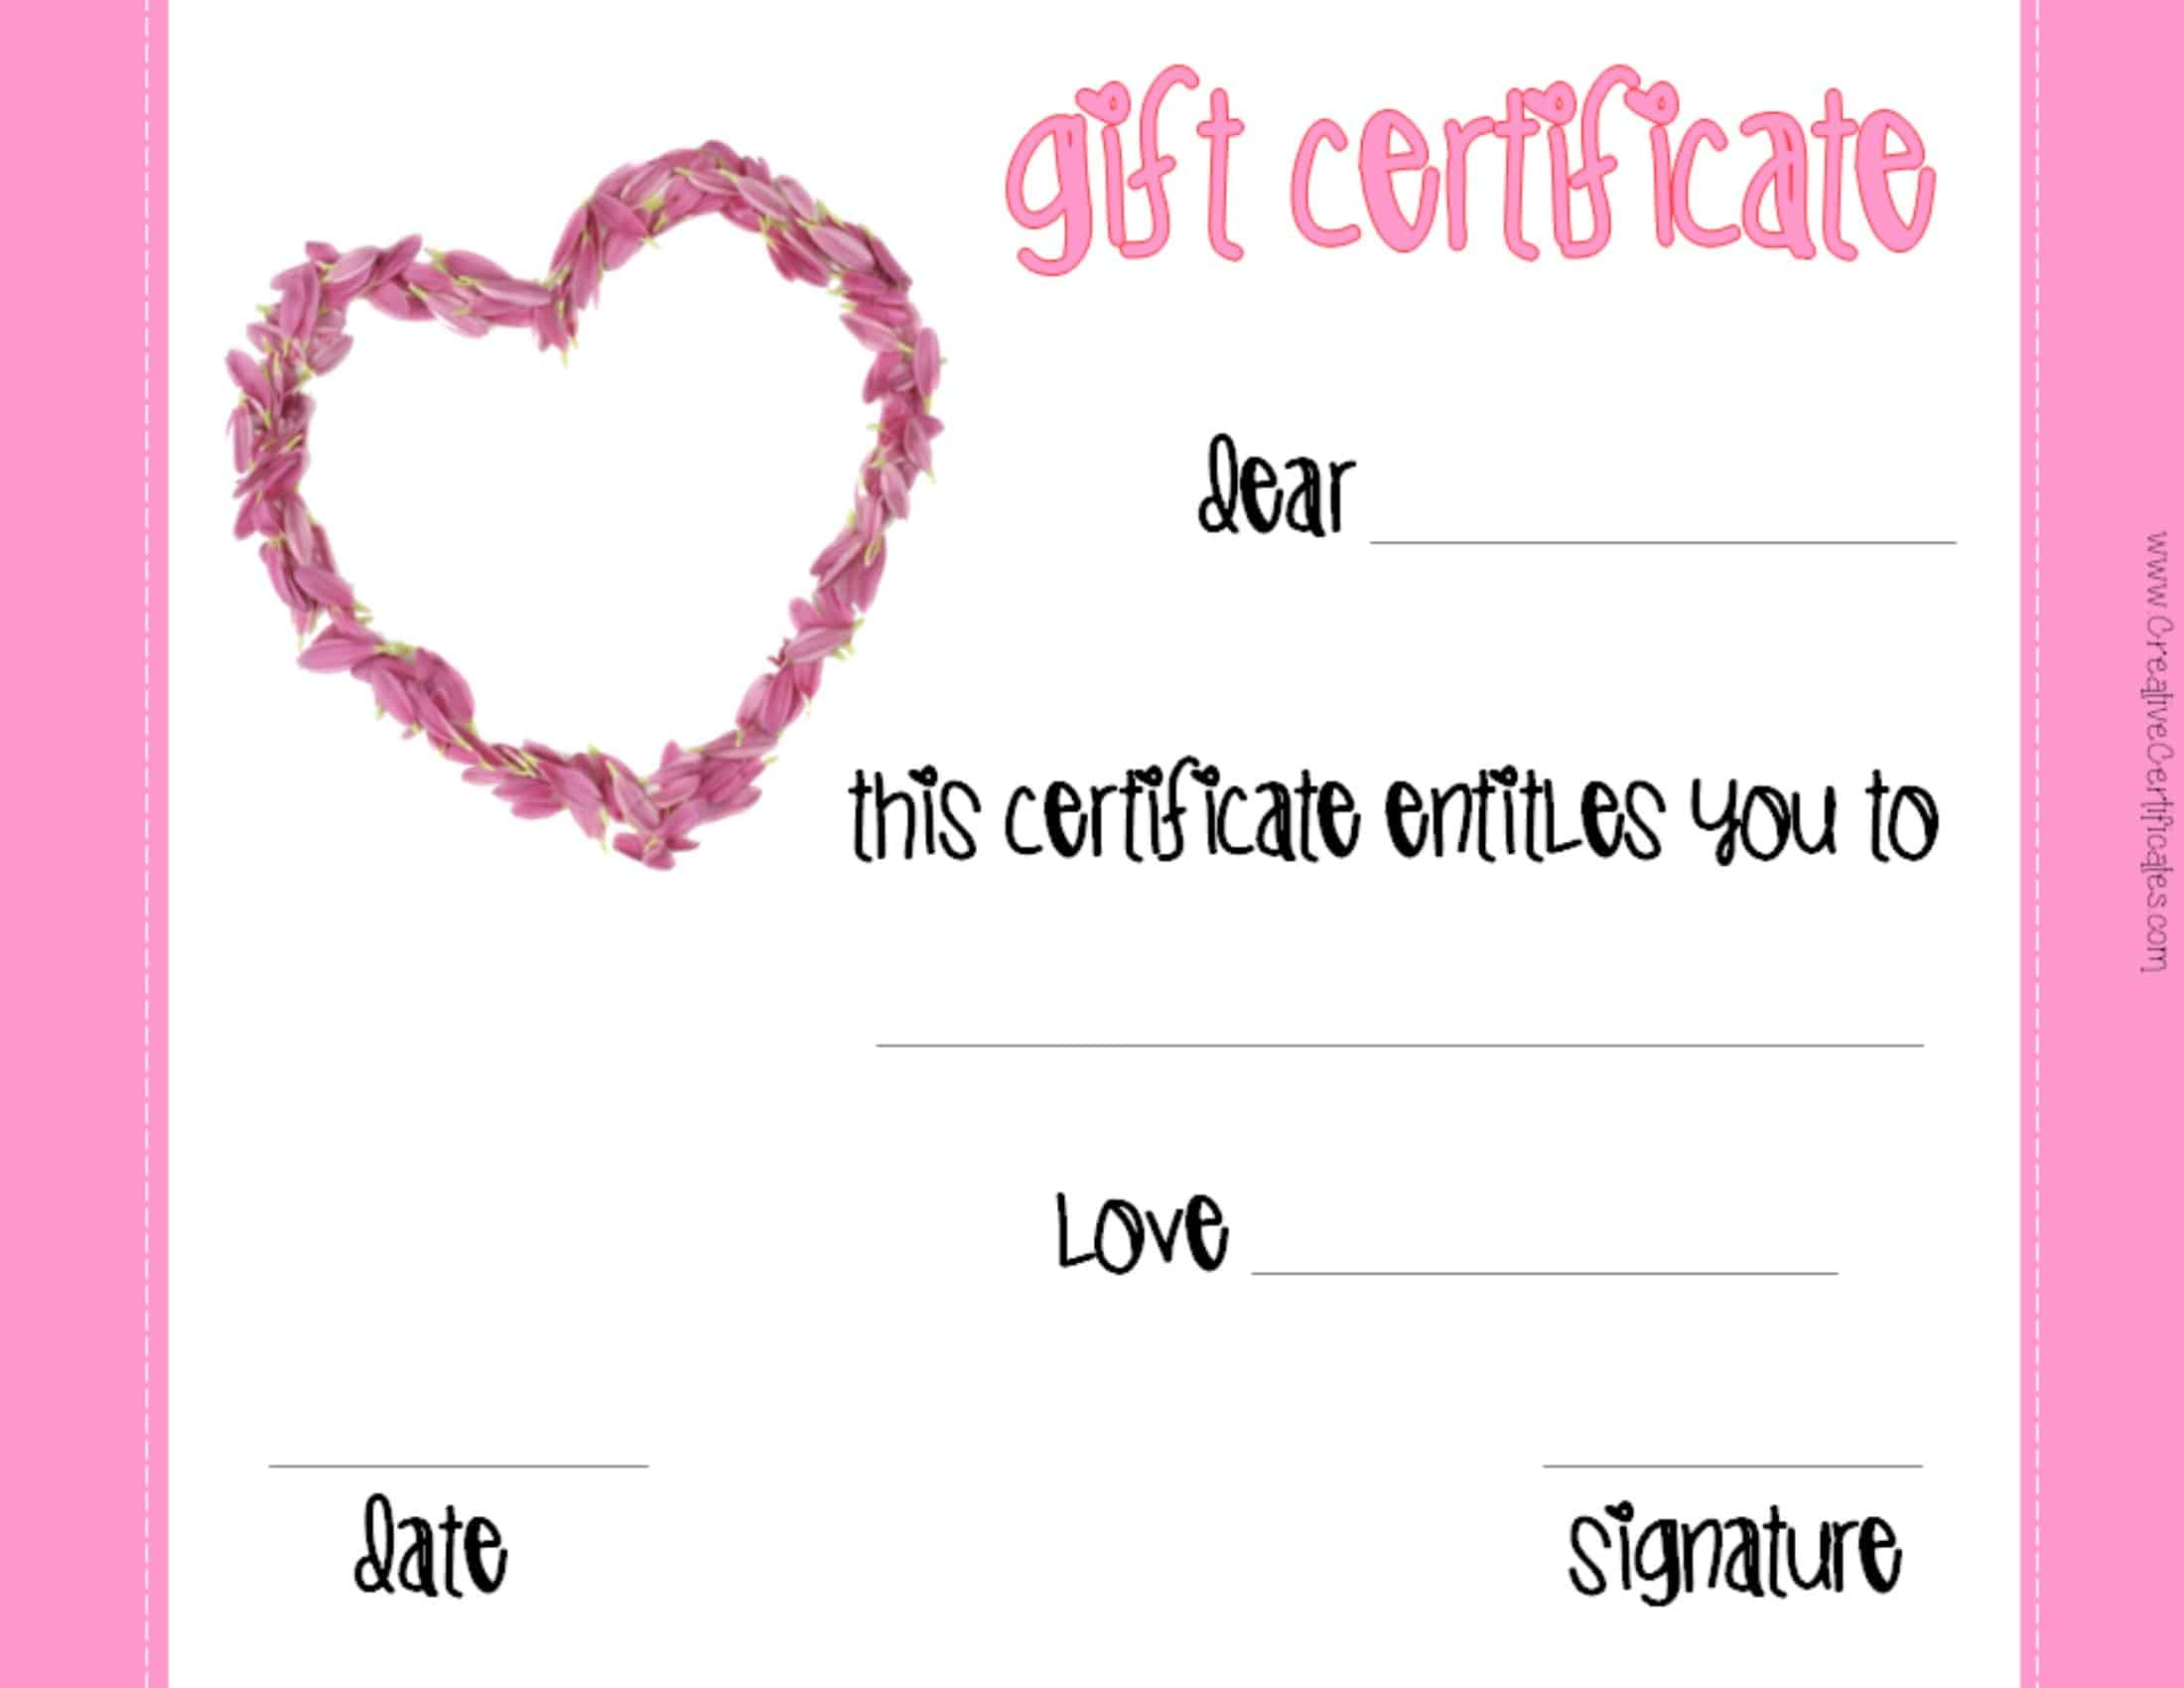 online certificate maker gift certificate middot certificate of achievement template middot printable certificate of appreciation